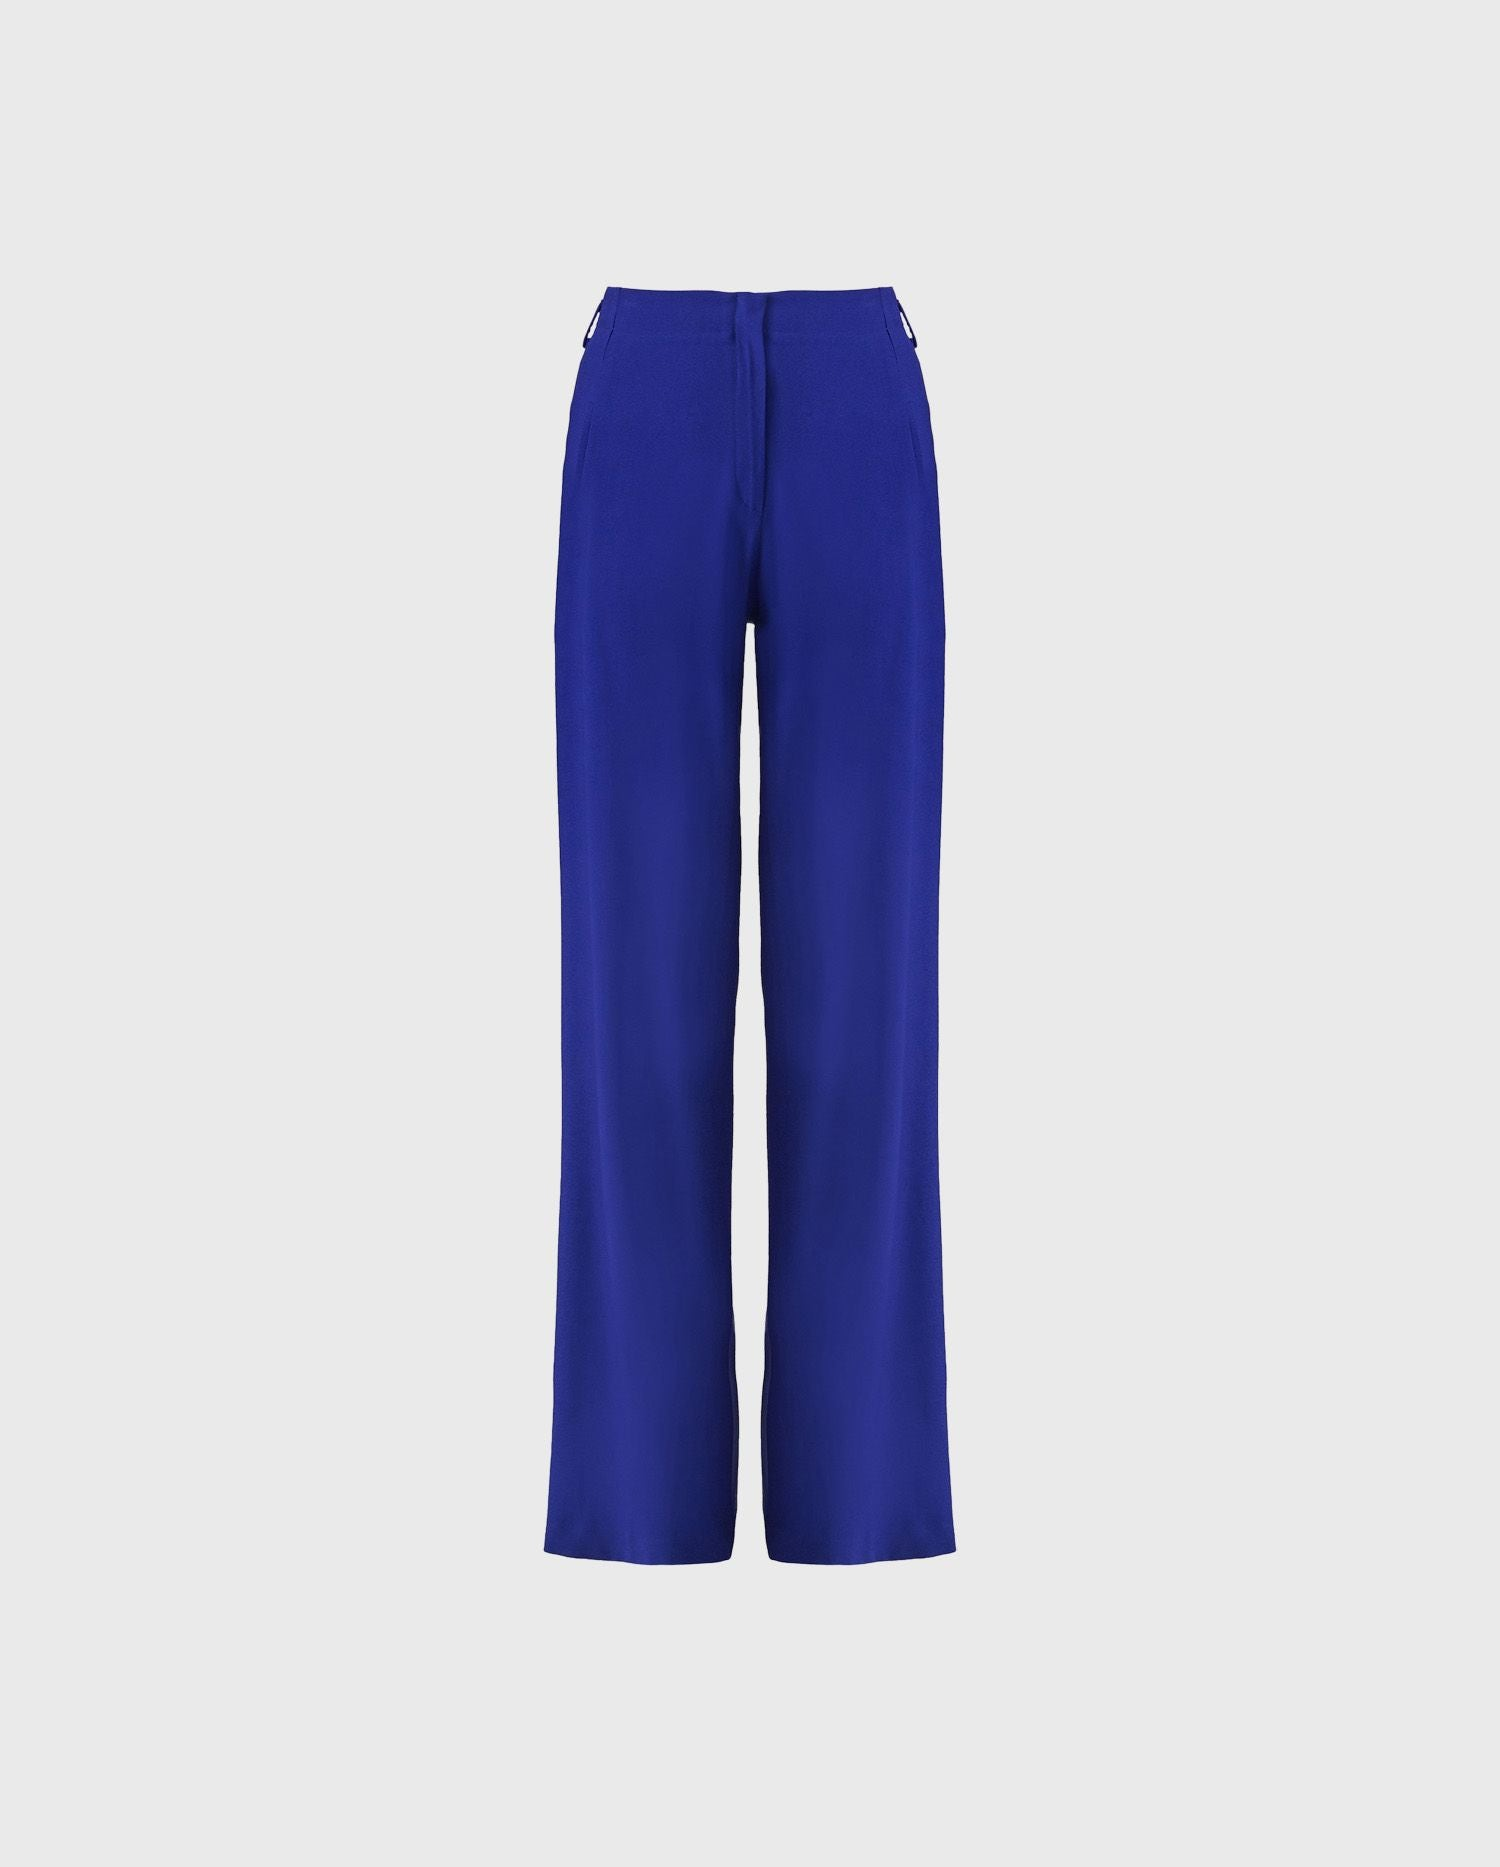 Add the LAUSANE ultra blue wide leg pants to your wardrobe for a vibrant pop of color